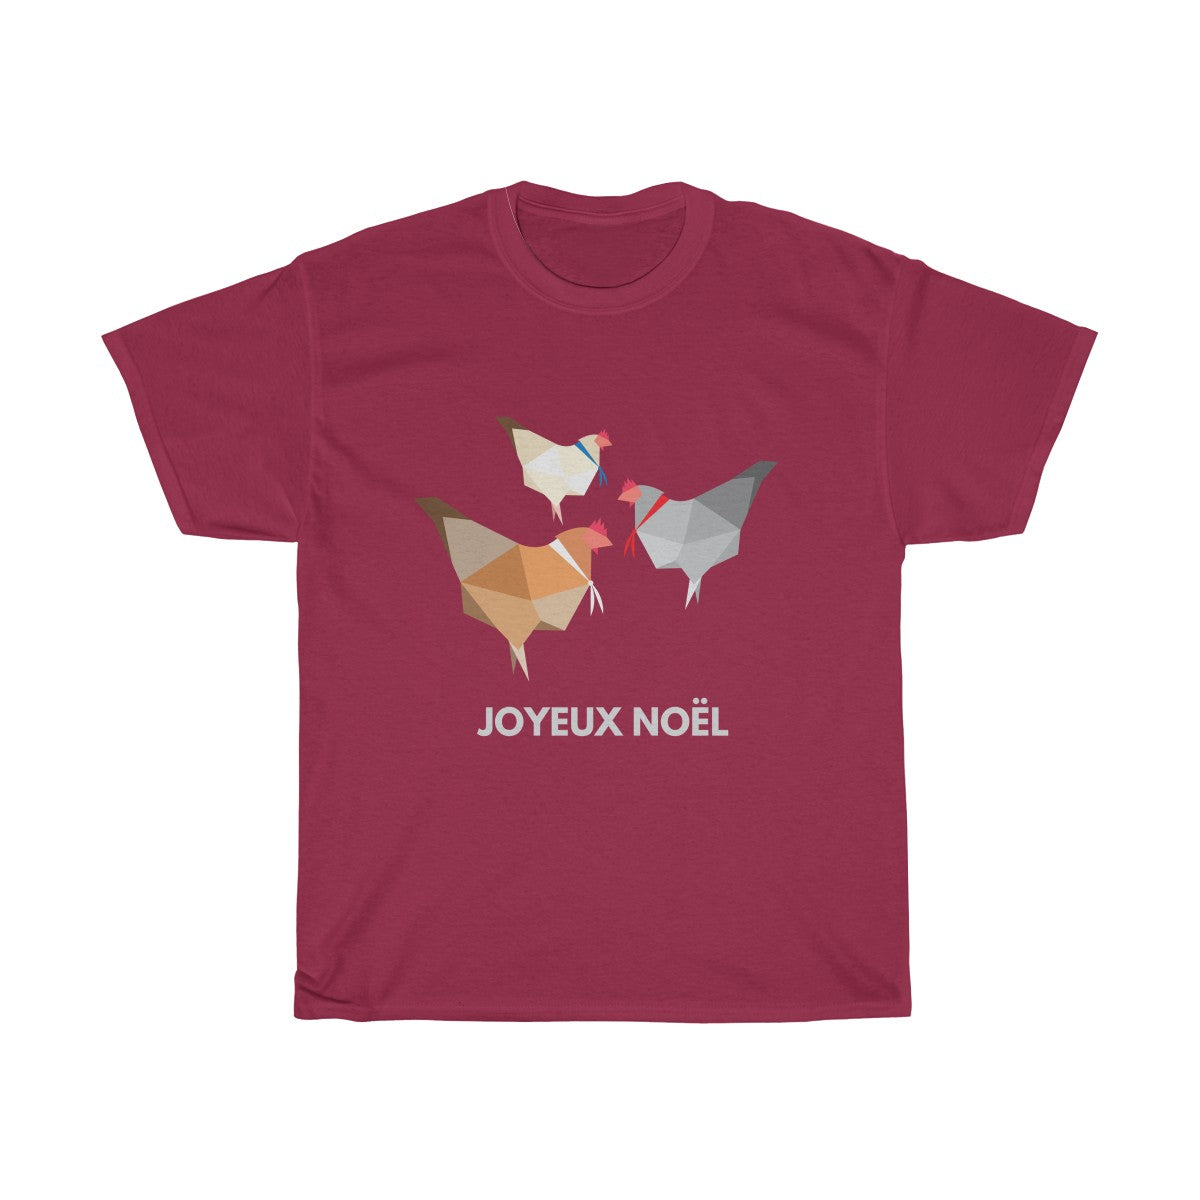 Three French Hens Christmas T-Shirt